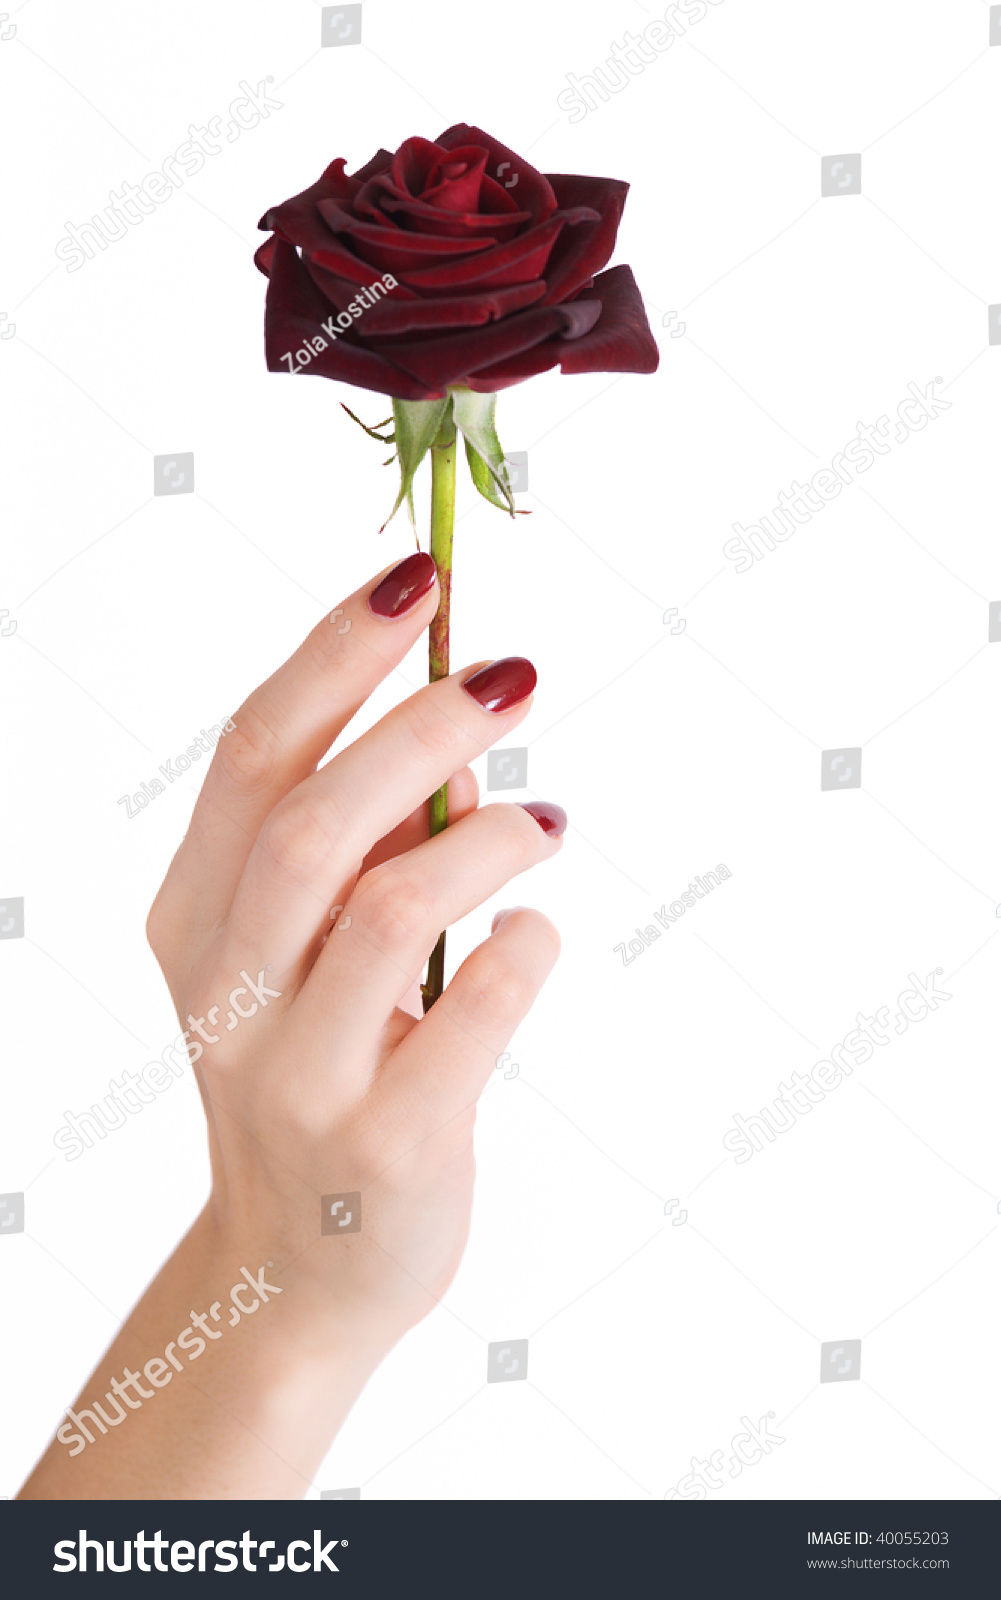 Beautiful woman hand with red manicure holding red rose for Hand holding a rose drawing